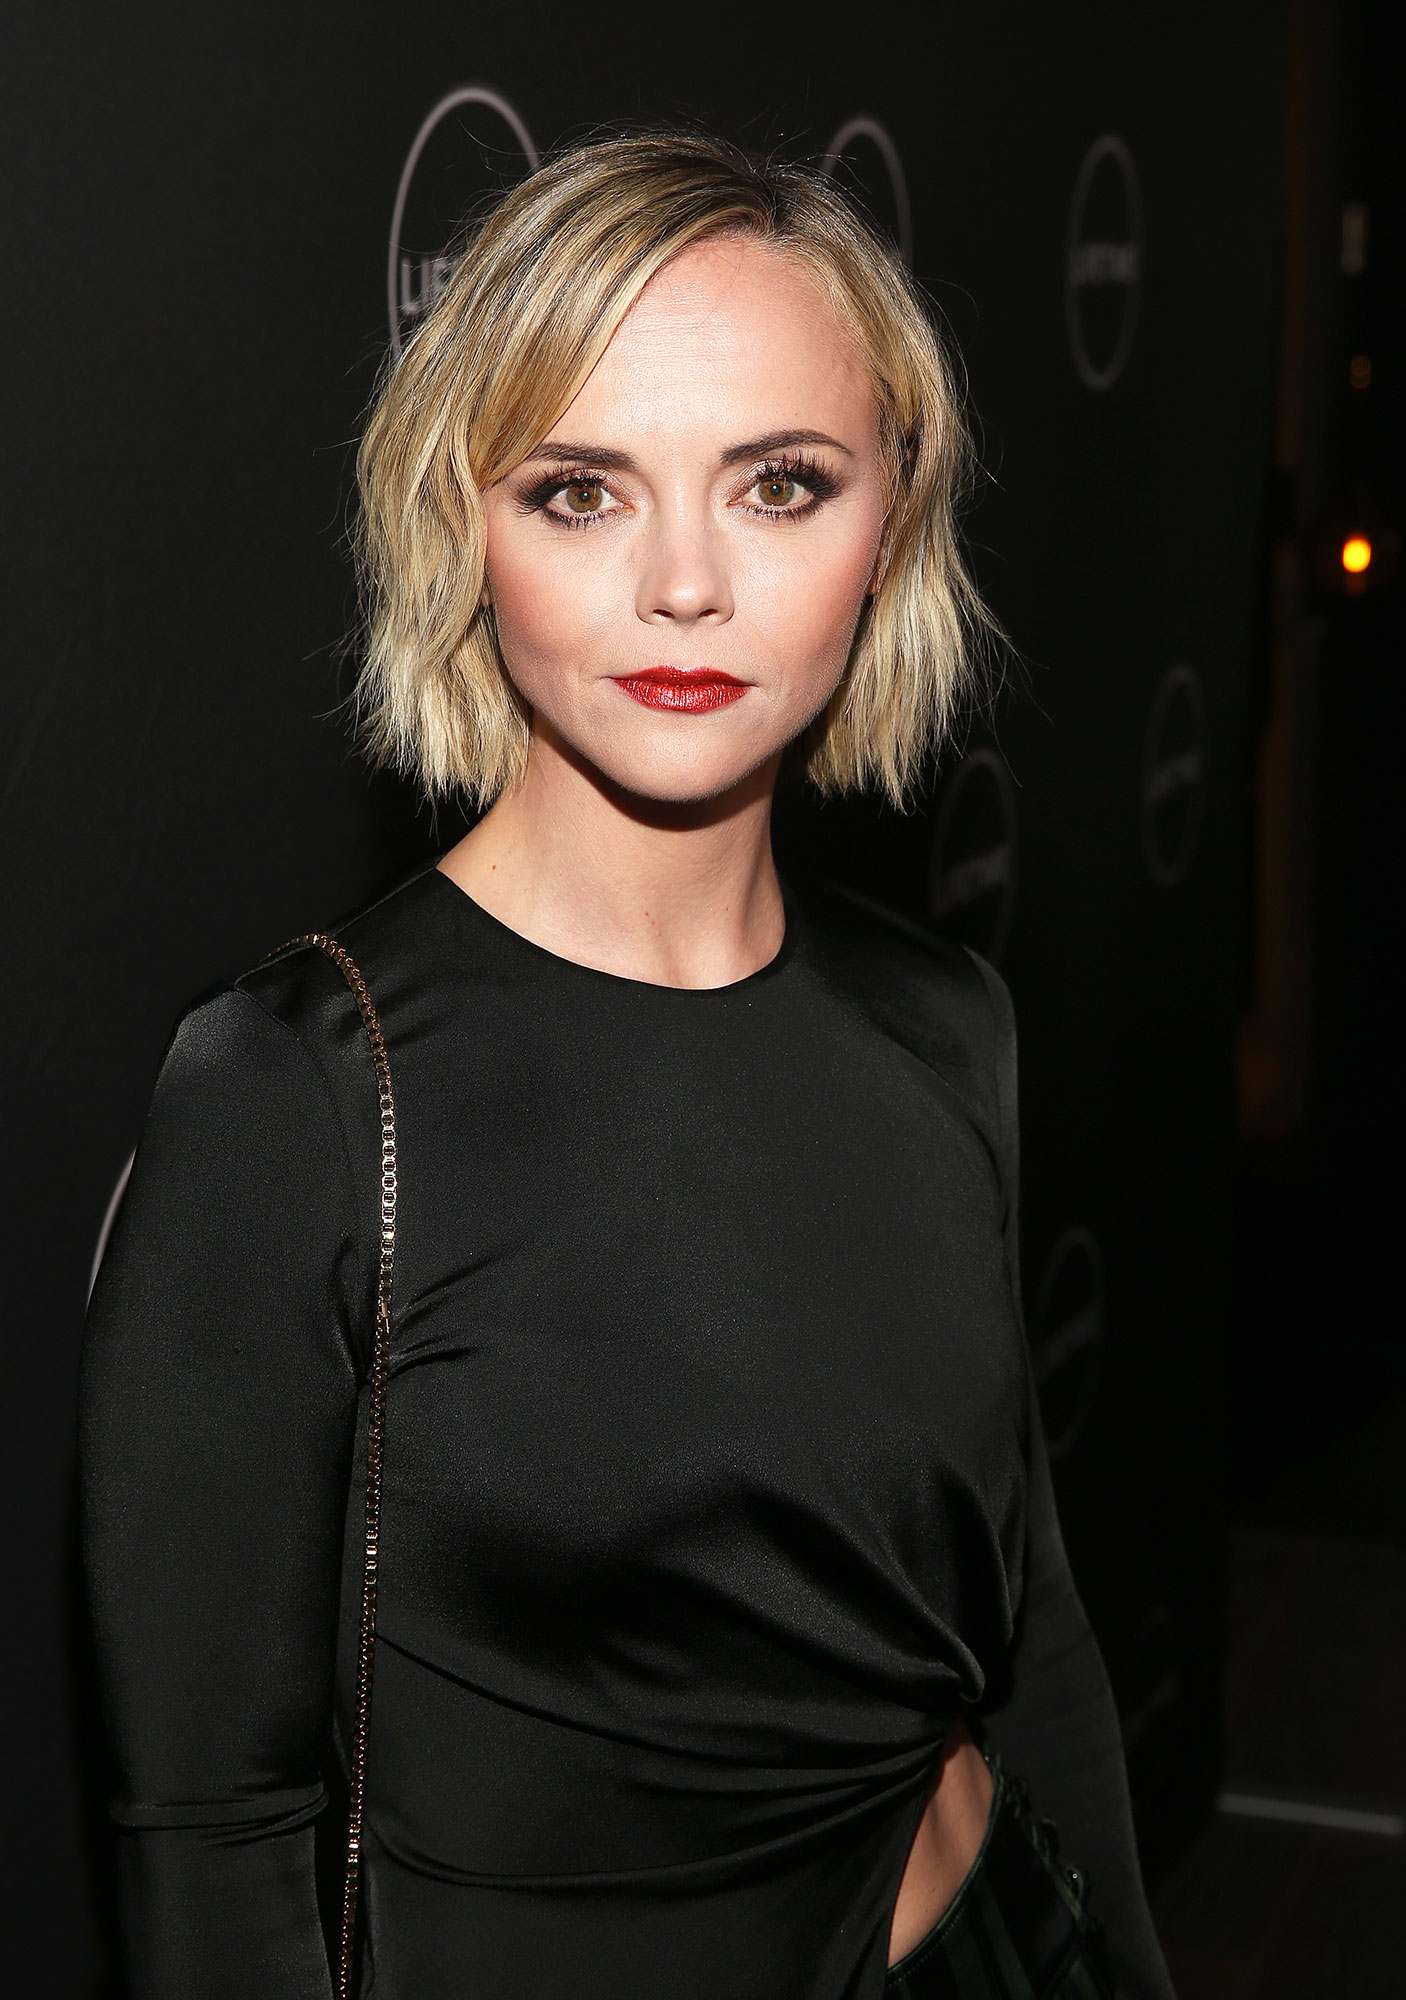 Christina Ricci - While attending the Winter Movies Mixer on January 9, the actress stunned in a shimmery ruby red lipstick.